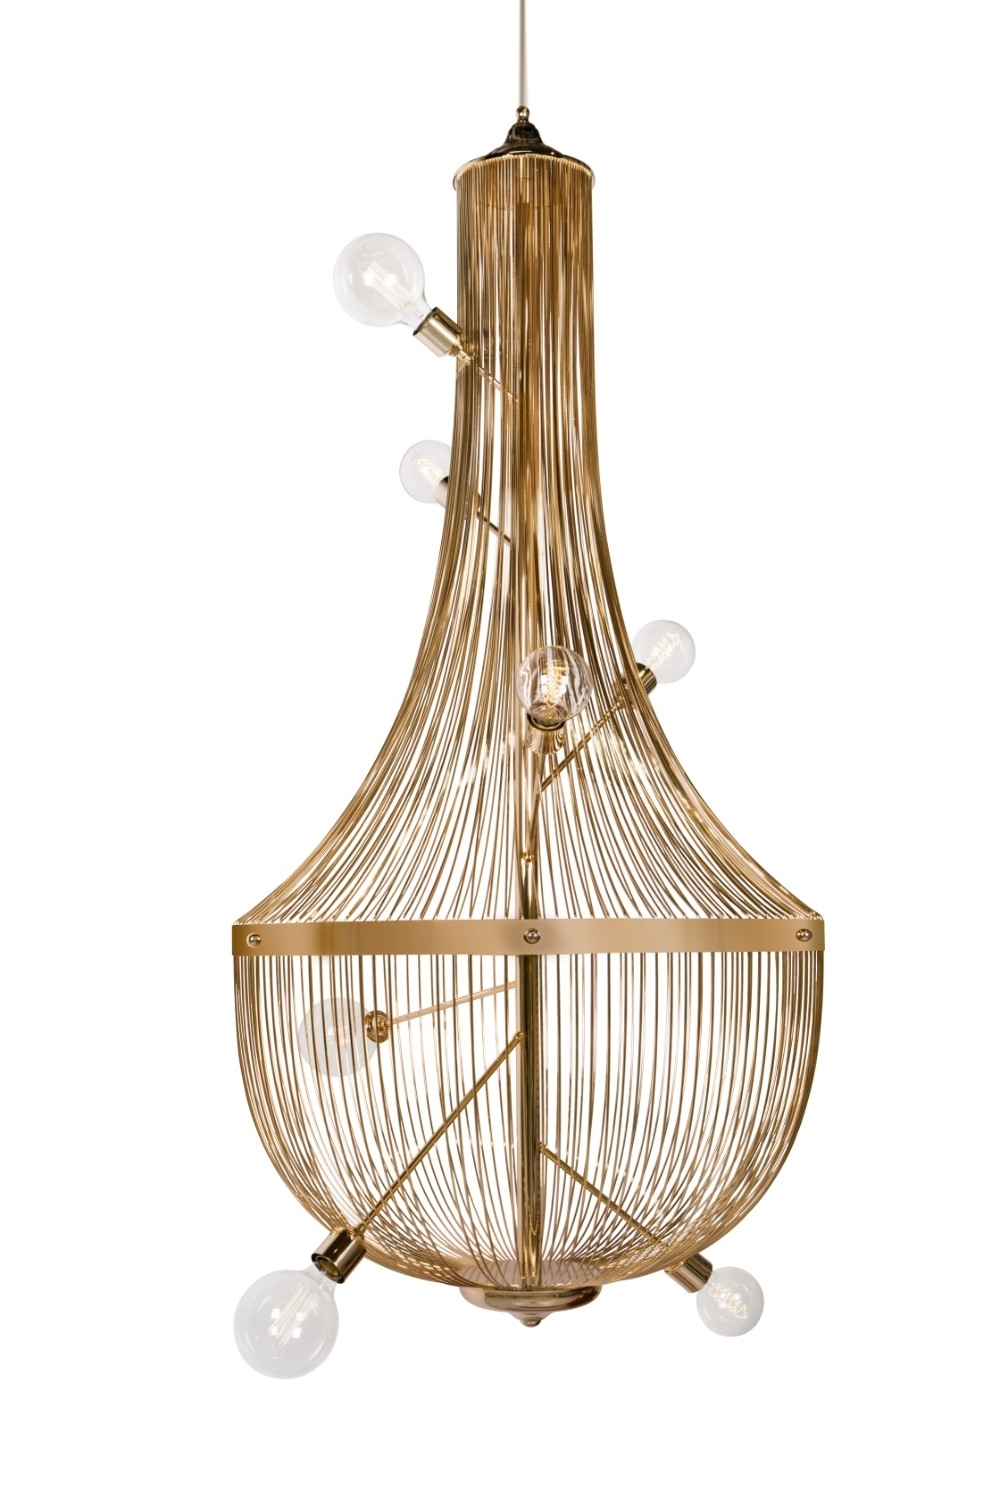 Most Up To Date Expensive Chandeliers Pertaining To Top 10 Most Expensive Chandeliers In The World – Design Limited Edition (View 14 of 20)